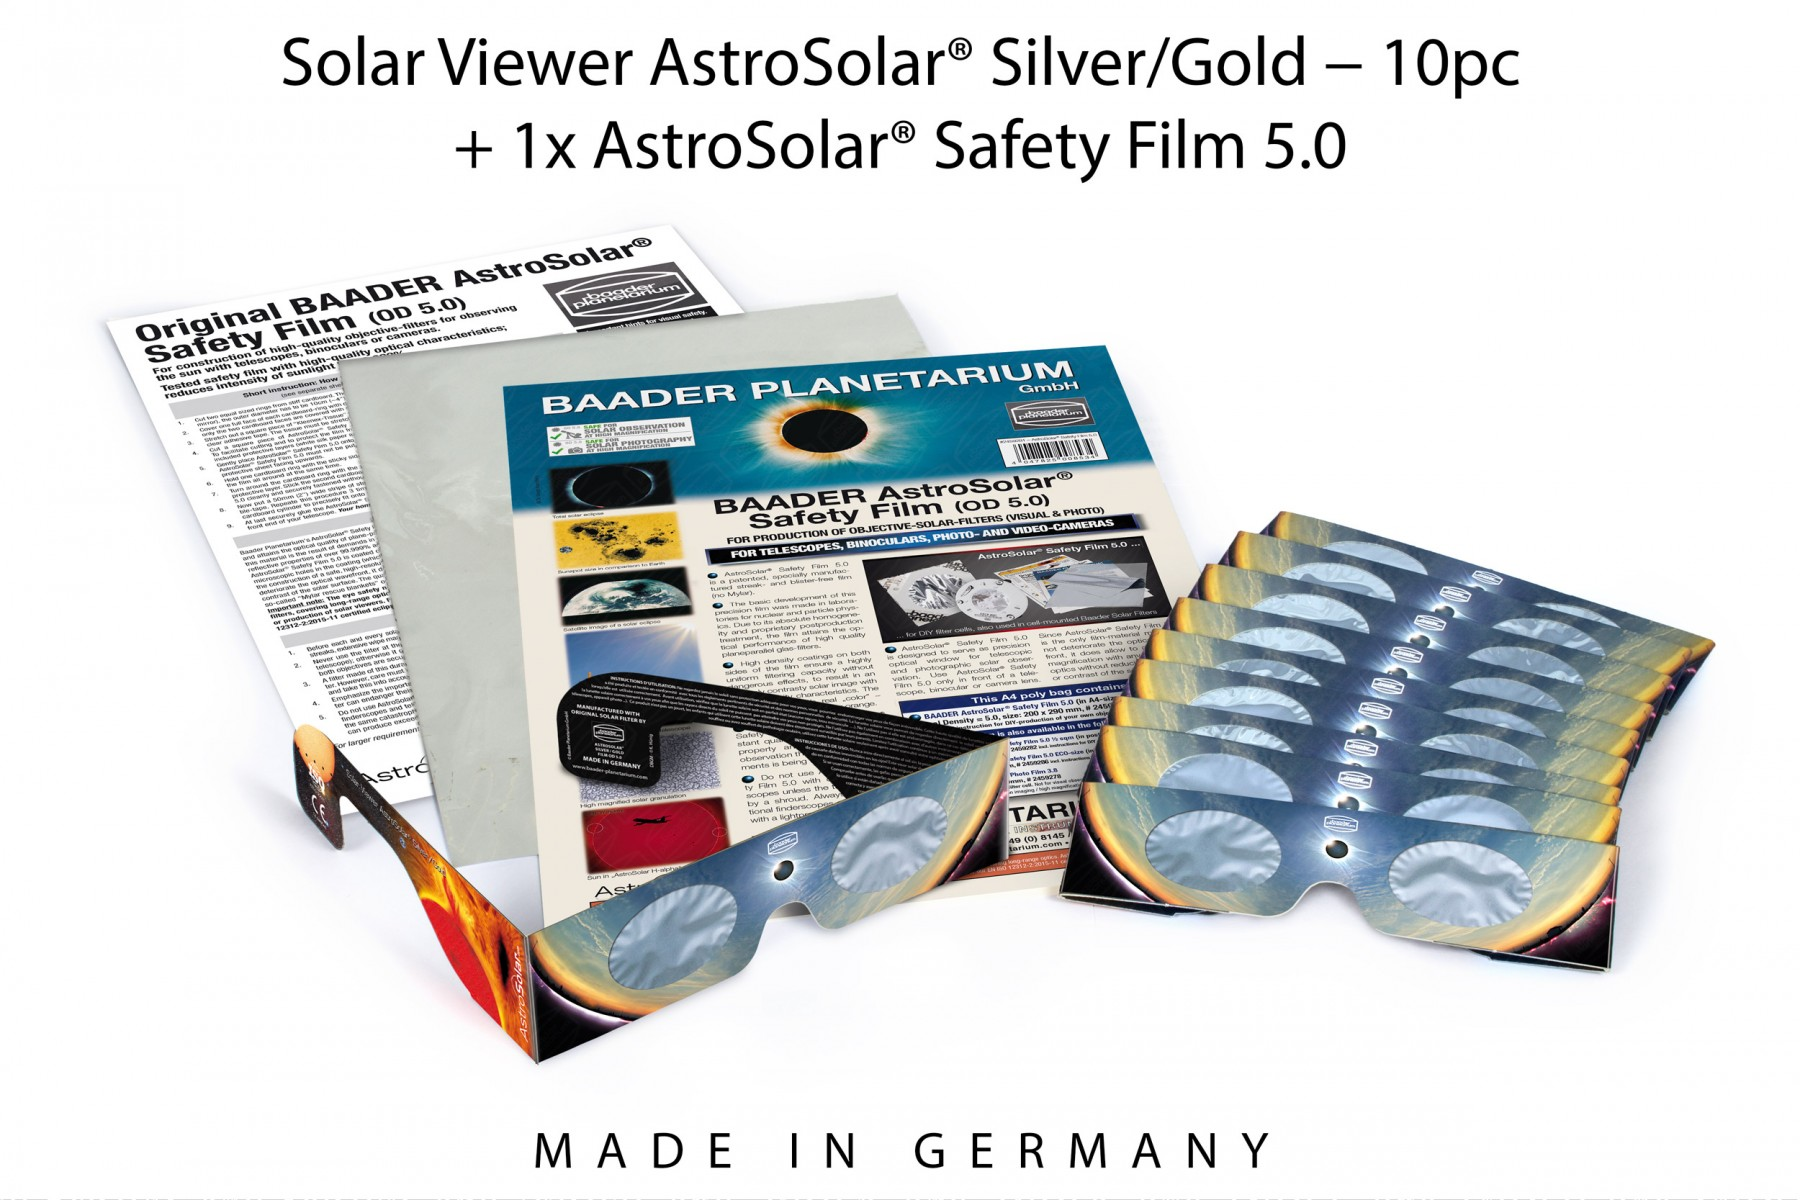 10pc Solar Viewer AstroSolar® Silver/Gold + 1x AstroSolar® Safety Film 5.0 - 20x29 cm